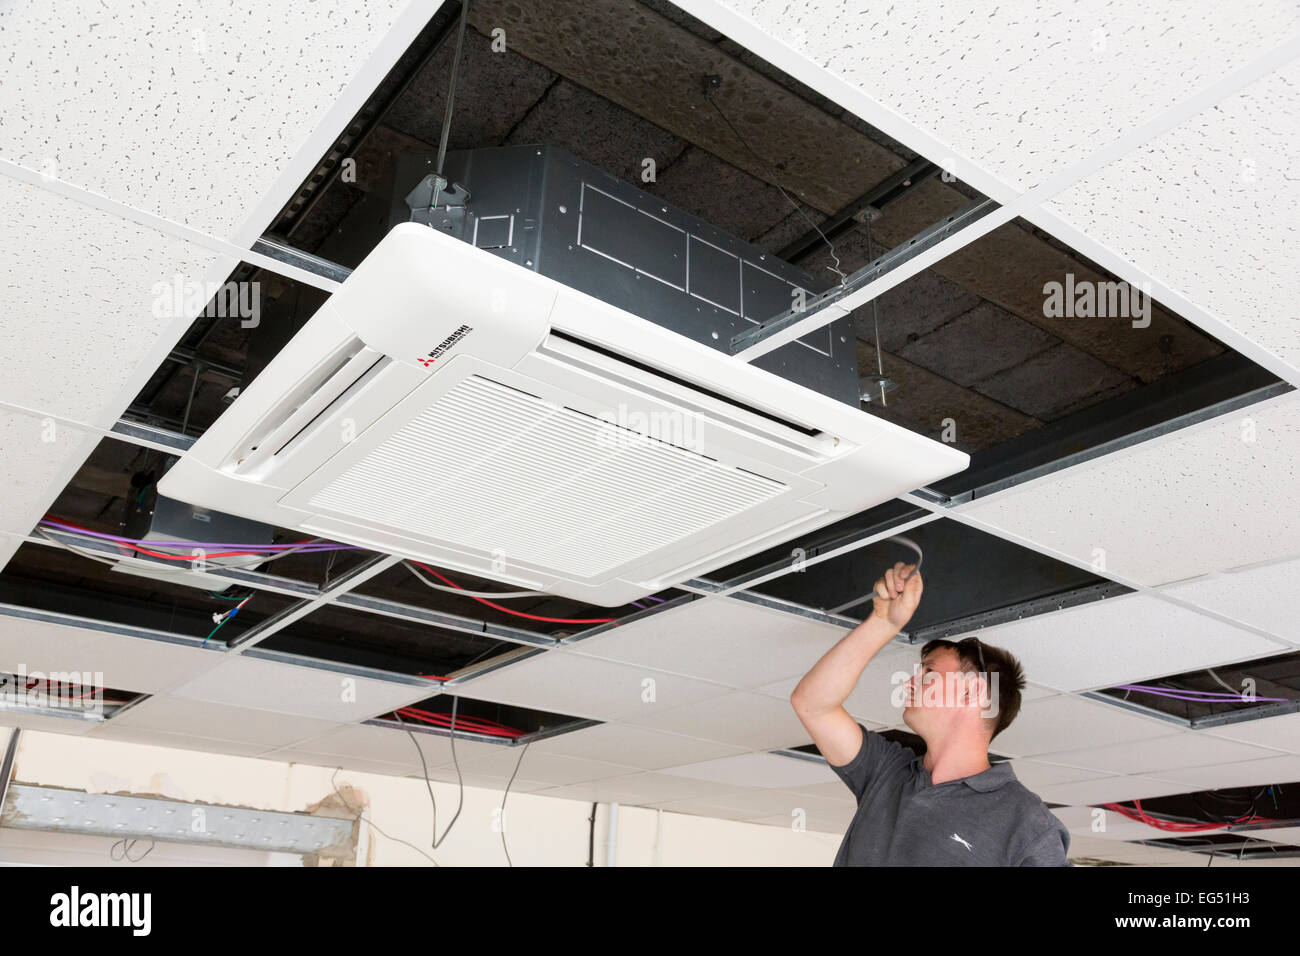 Electrician Installing Air Conditioning Unit In Suspended